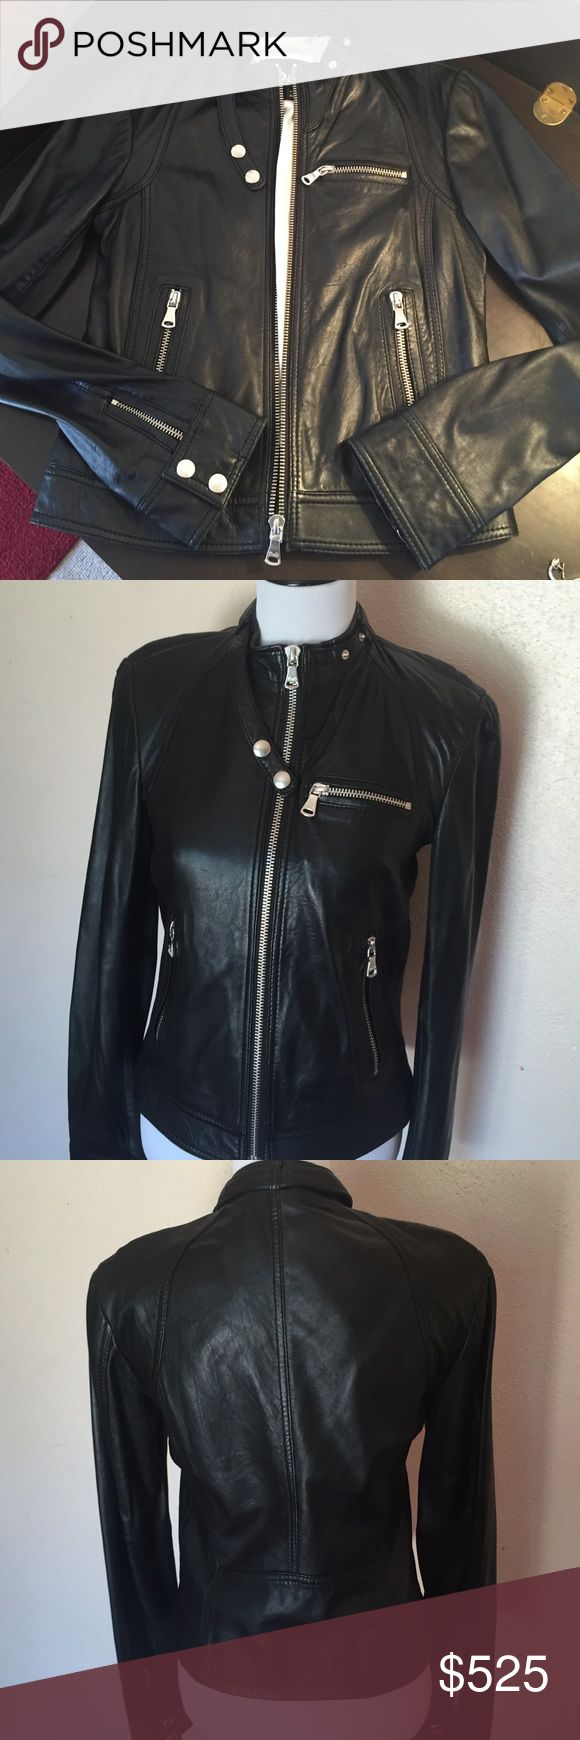 D&G leather Moto jacket Clothes design, Leather moto